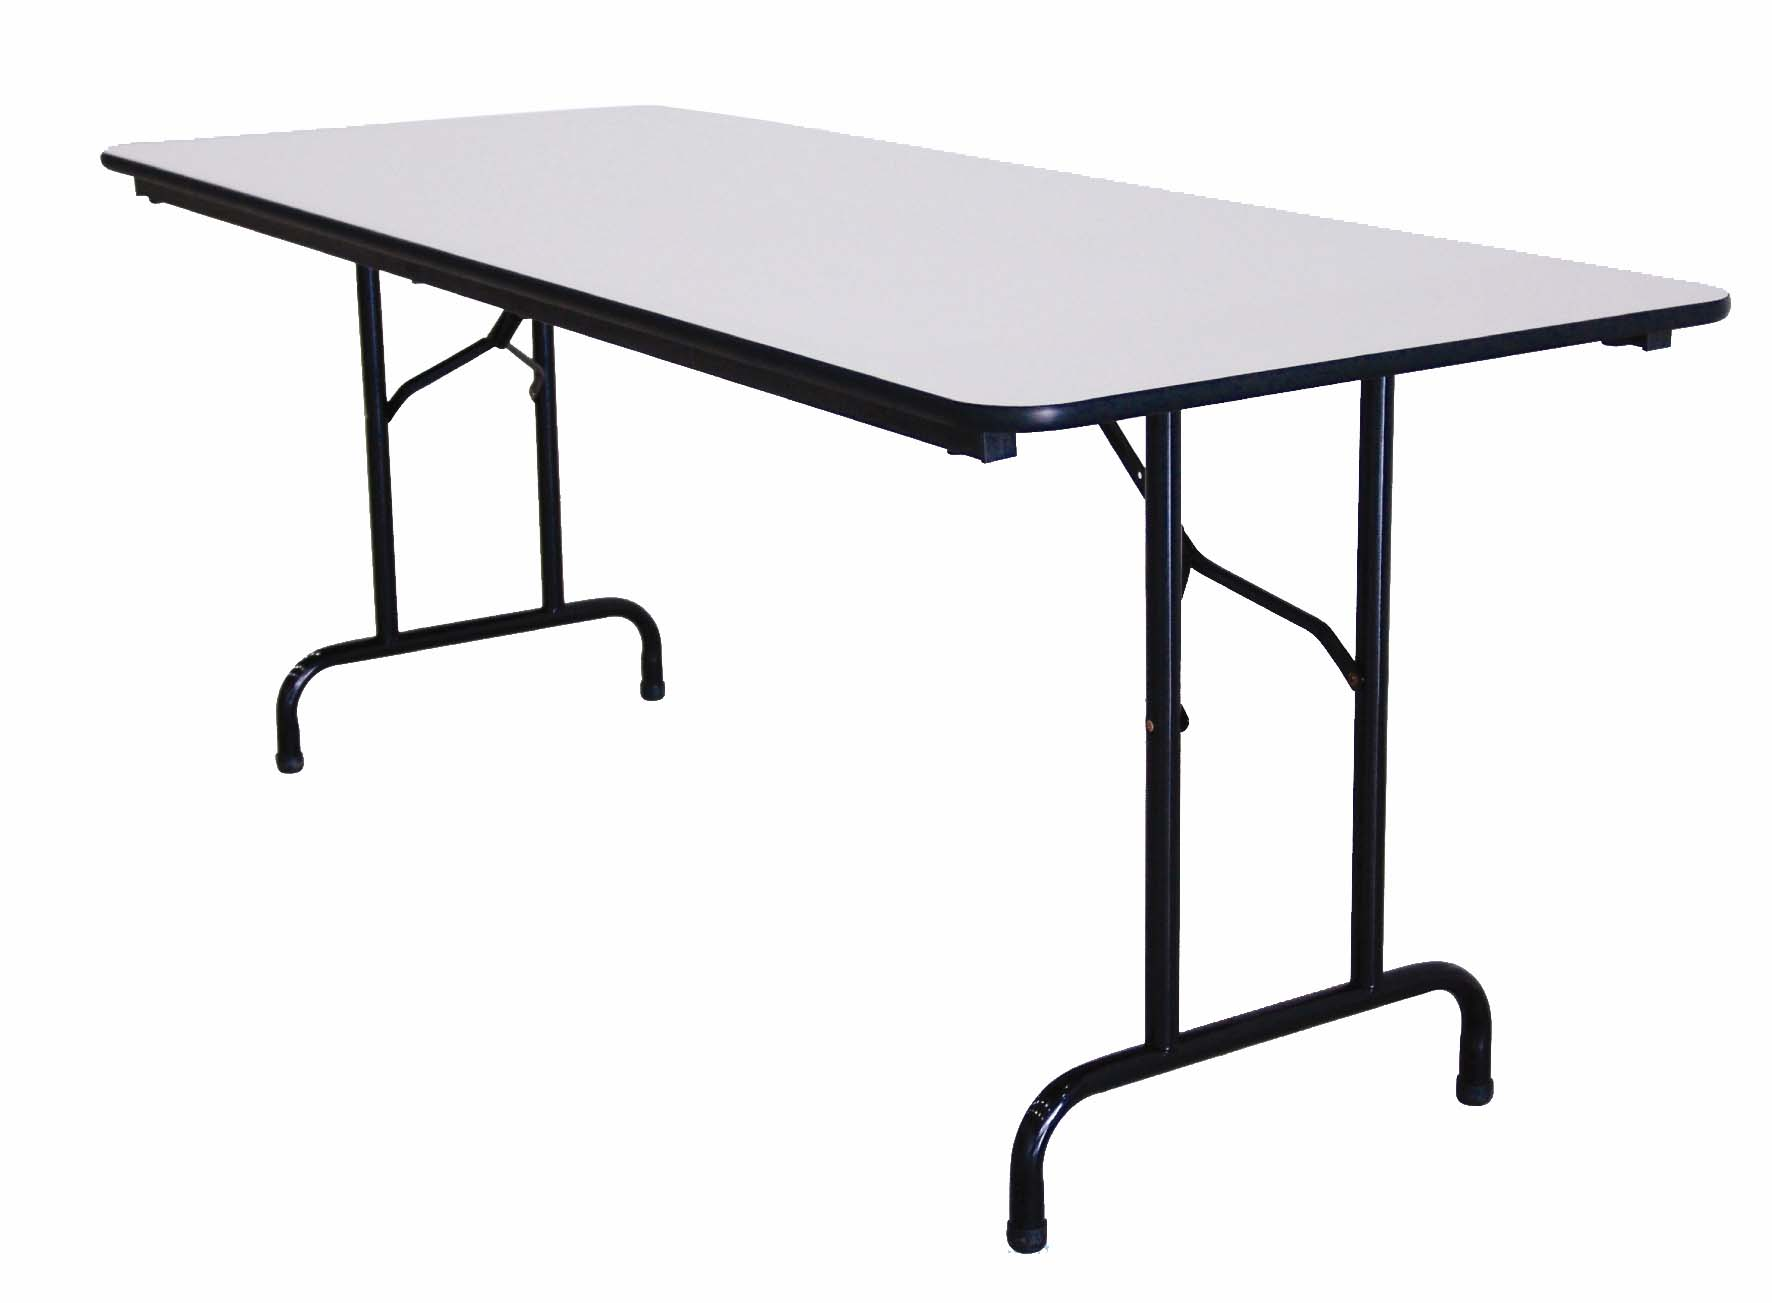 Table pliante rectangulaire - Tables collectivites pliantes ...